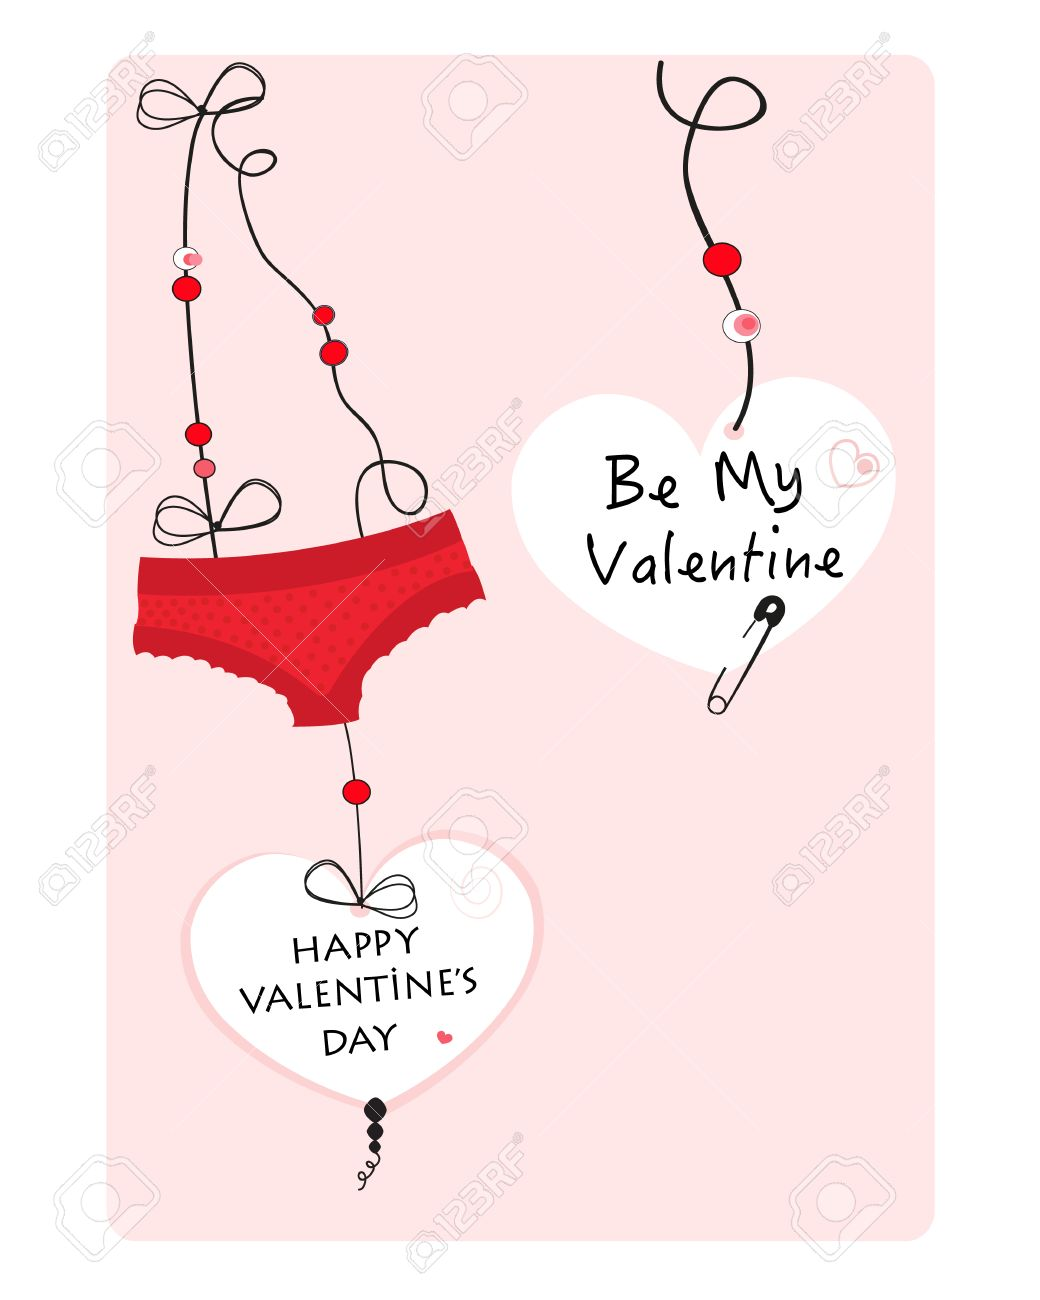 Hanging Hearts And Underwear Panties Valentine Day Greeting Card